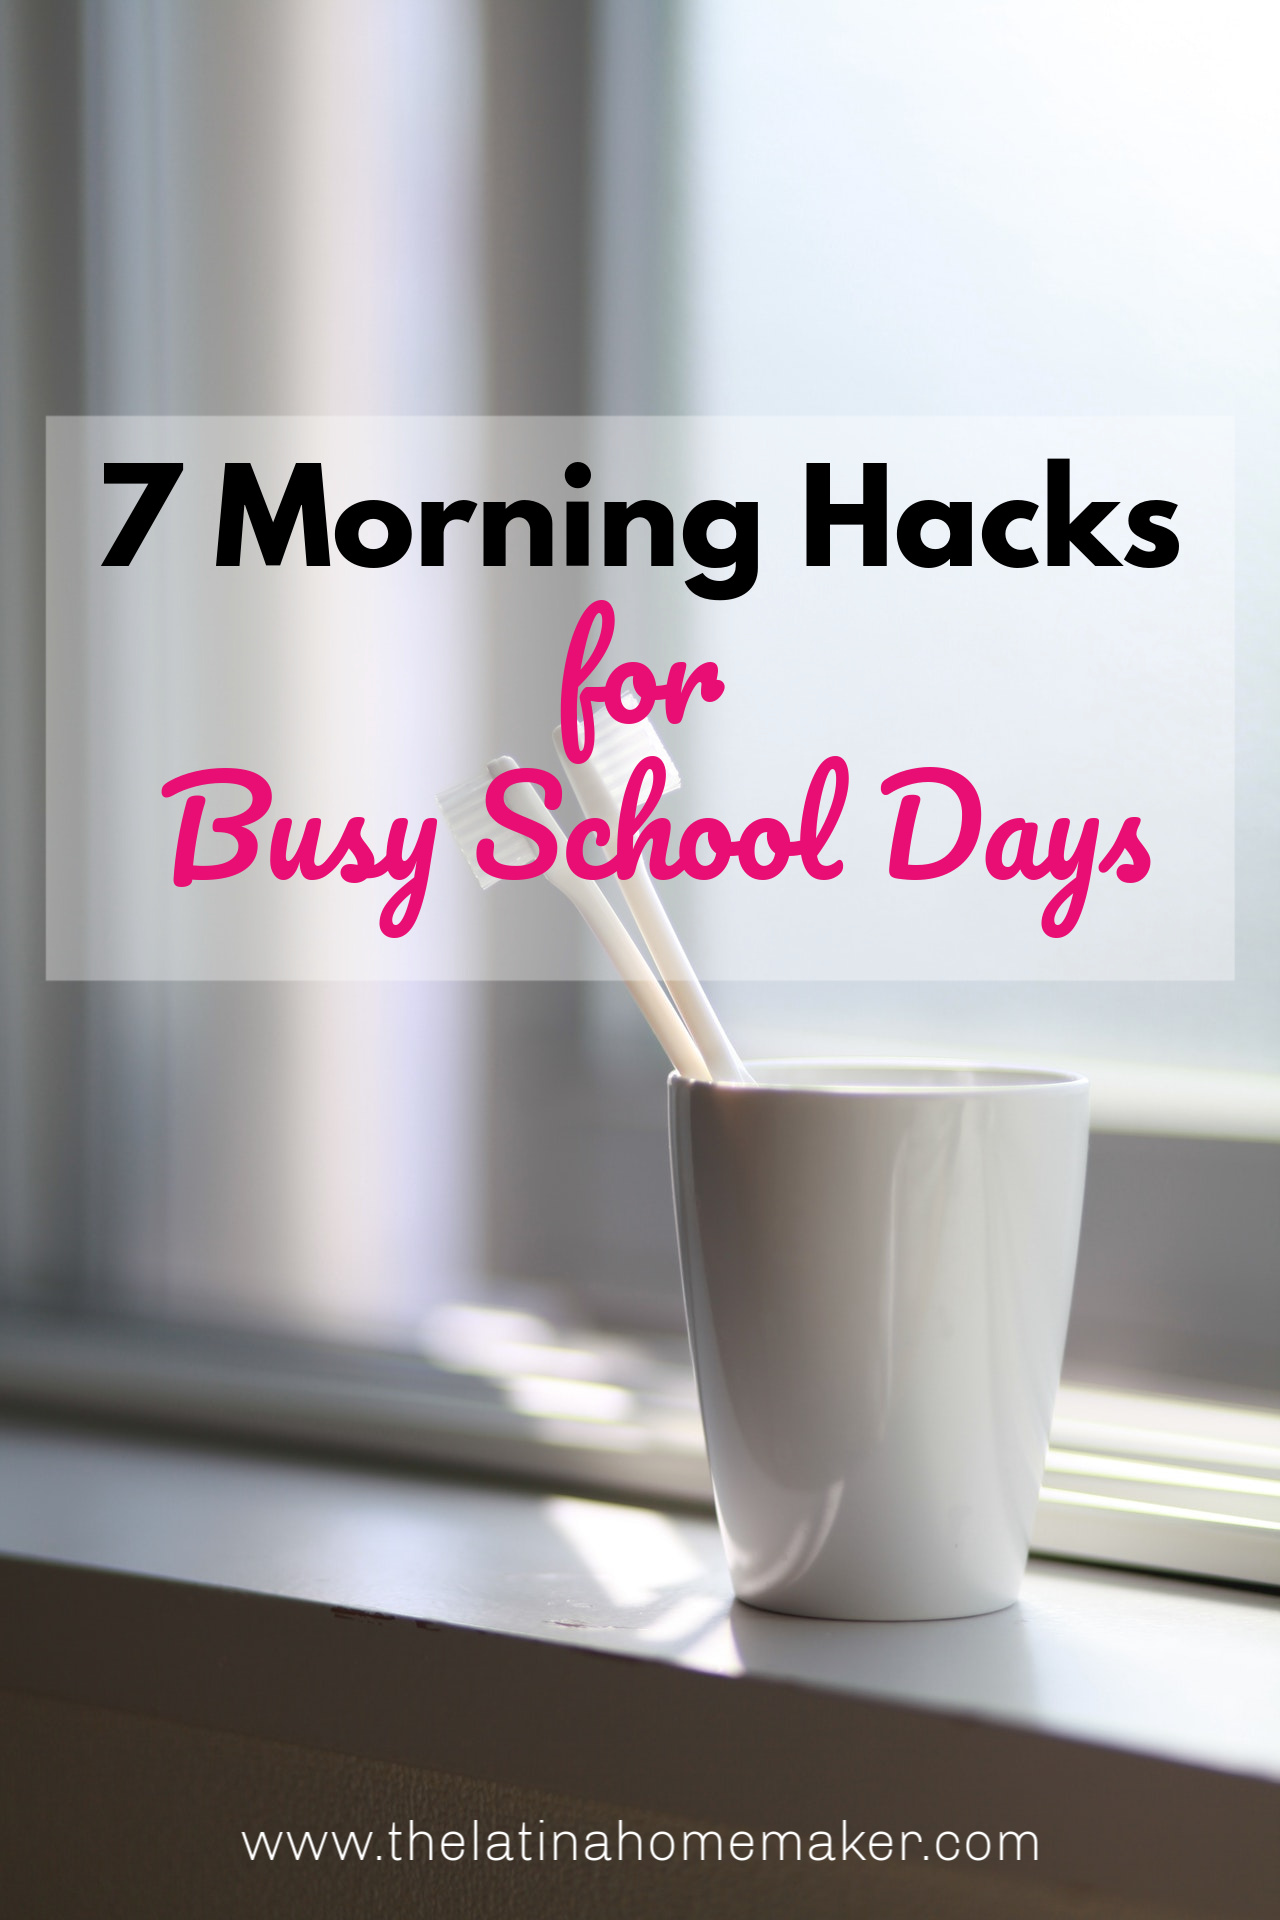 No more stressing on school days! Easy hacks to help you eliminate the busy morning rush on while keeping your kids on track!